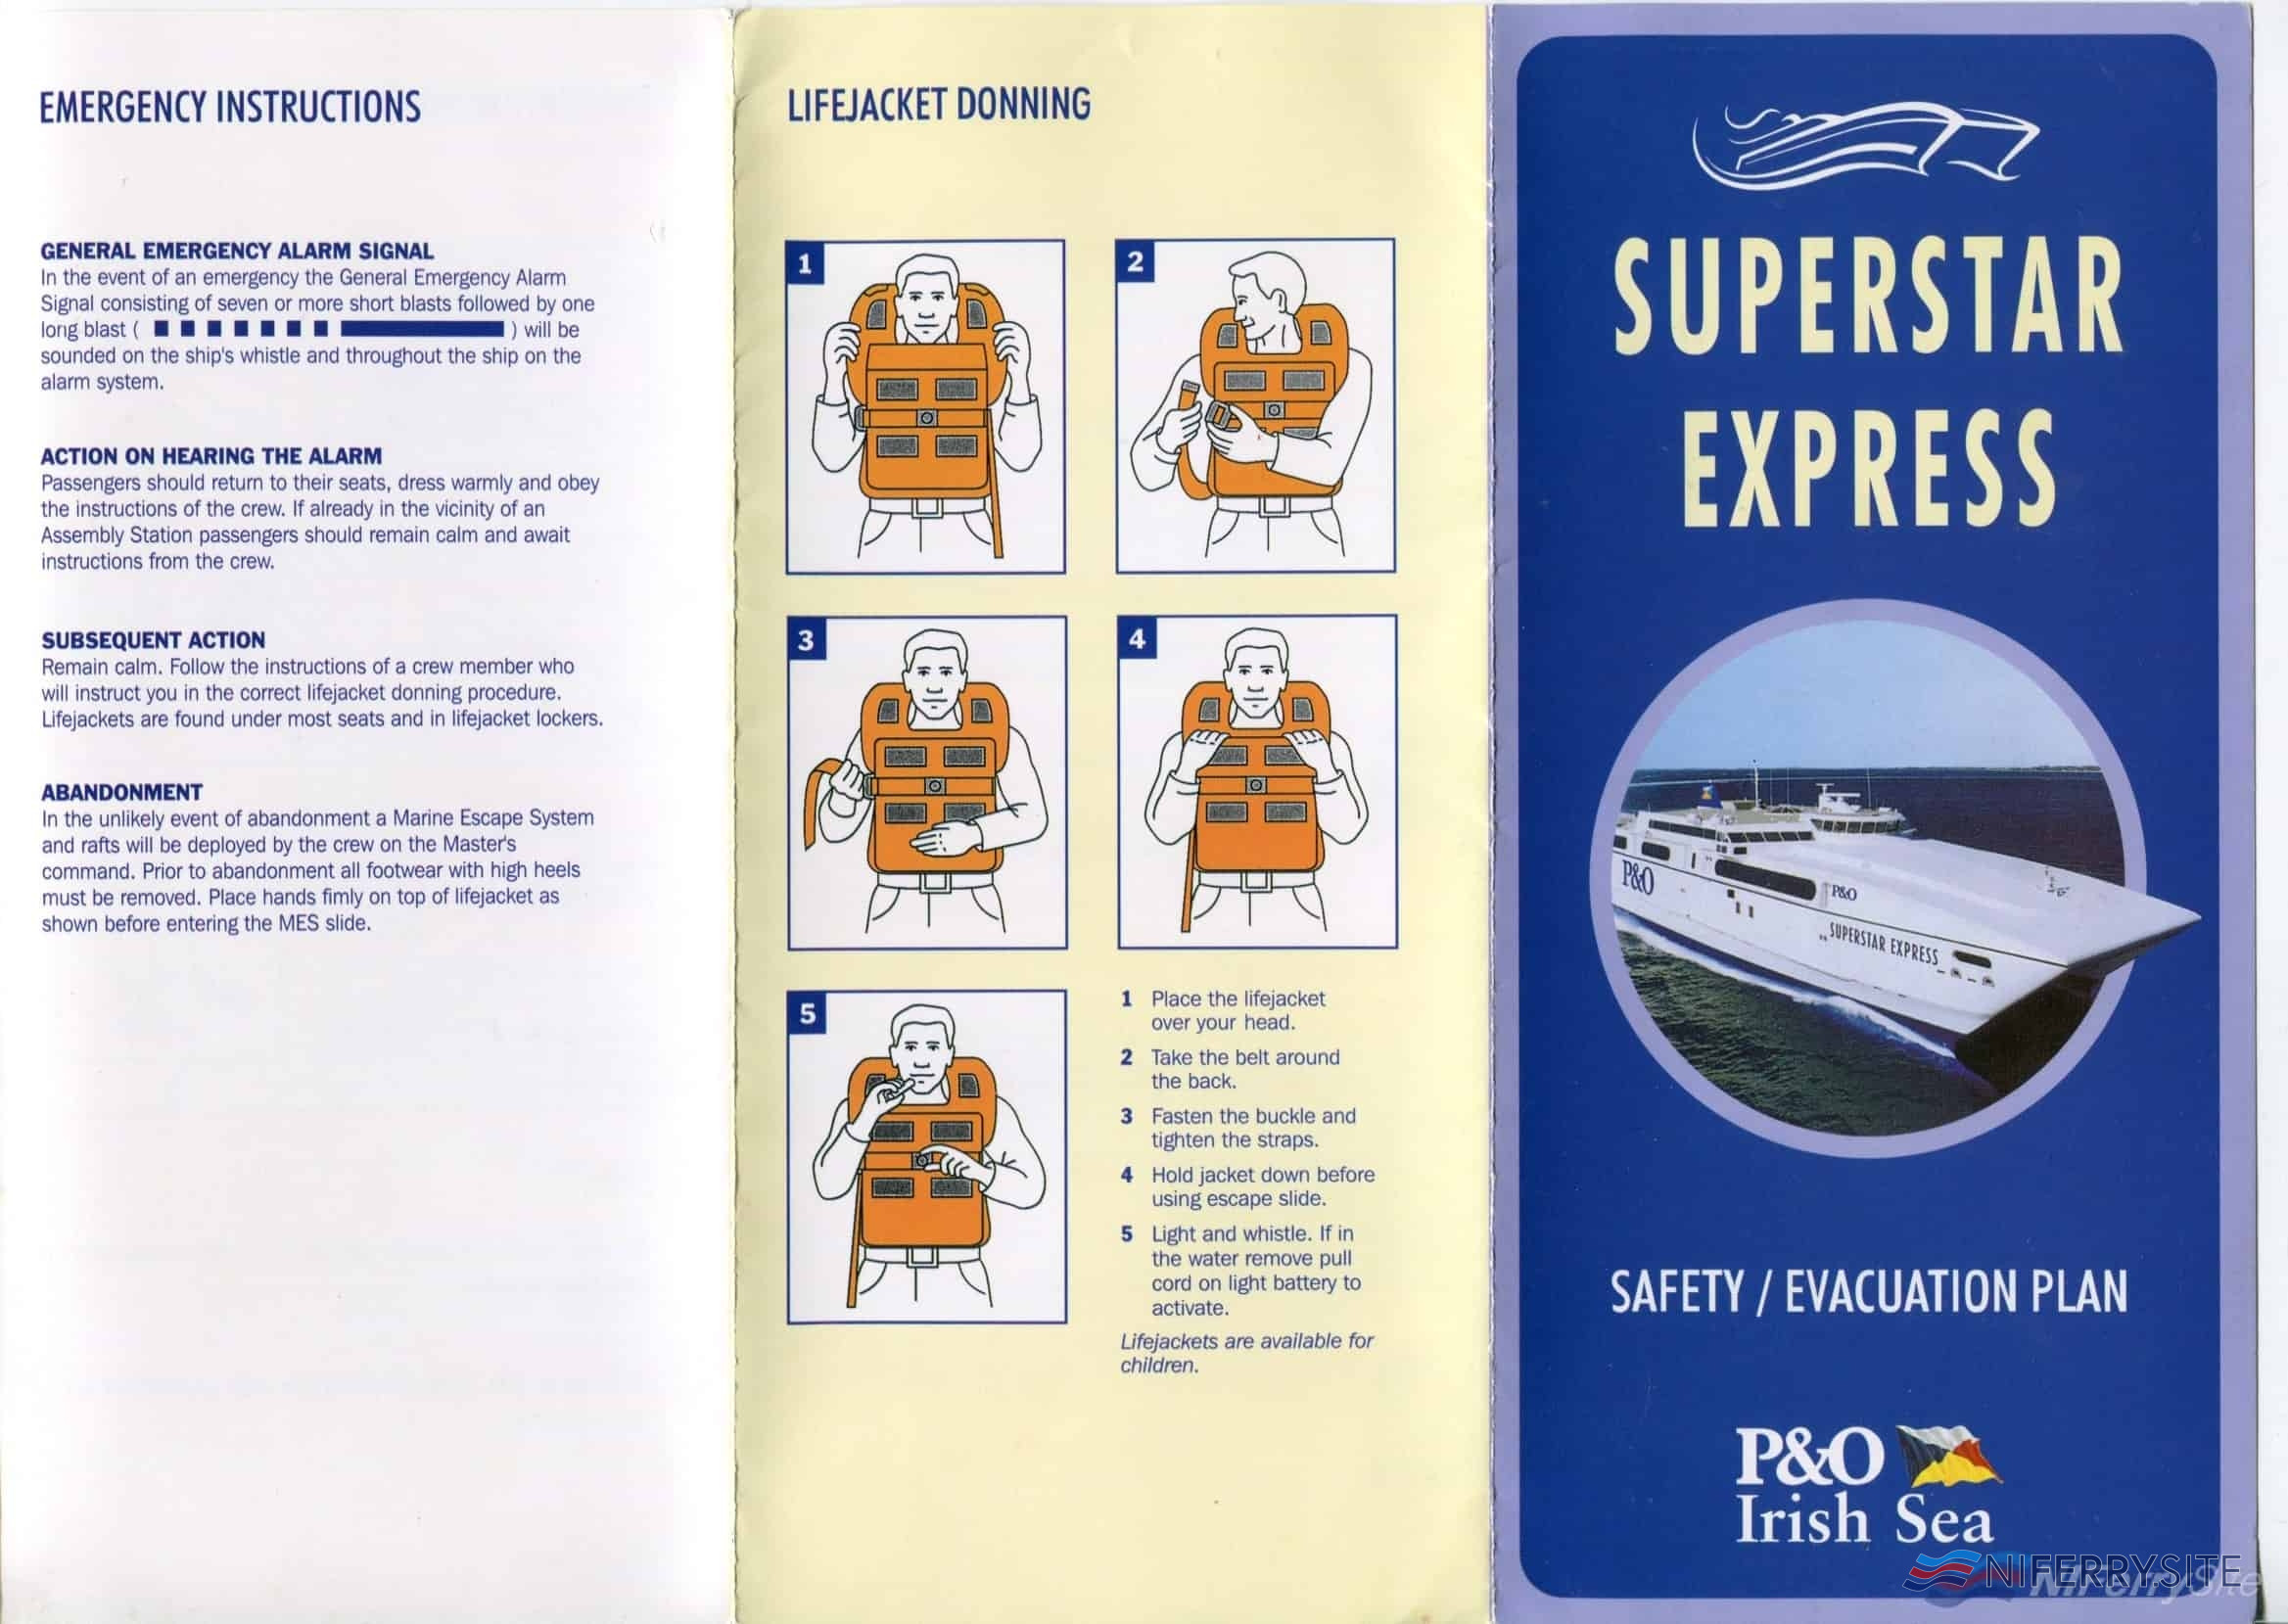 P&O Irish Sea <strong>SUPERSTAR EXPRESS</strong> Evacuation Plan Leaflet. NIFerry Archive.